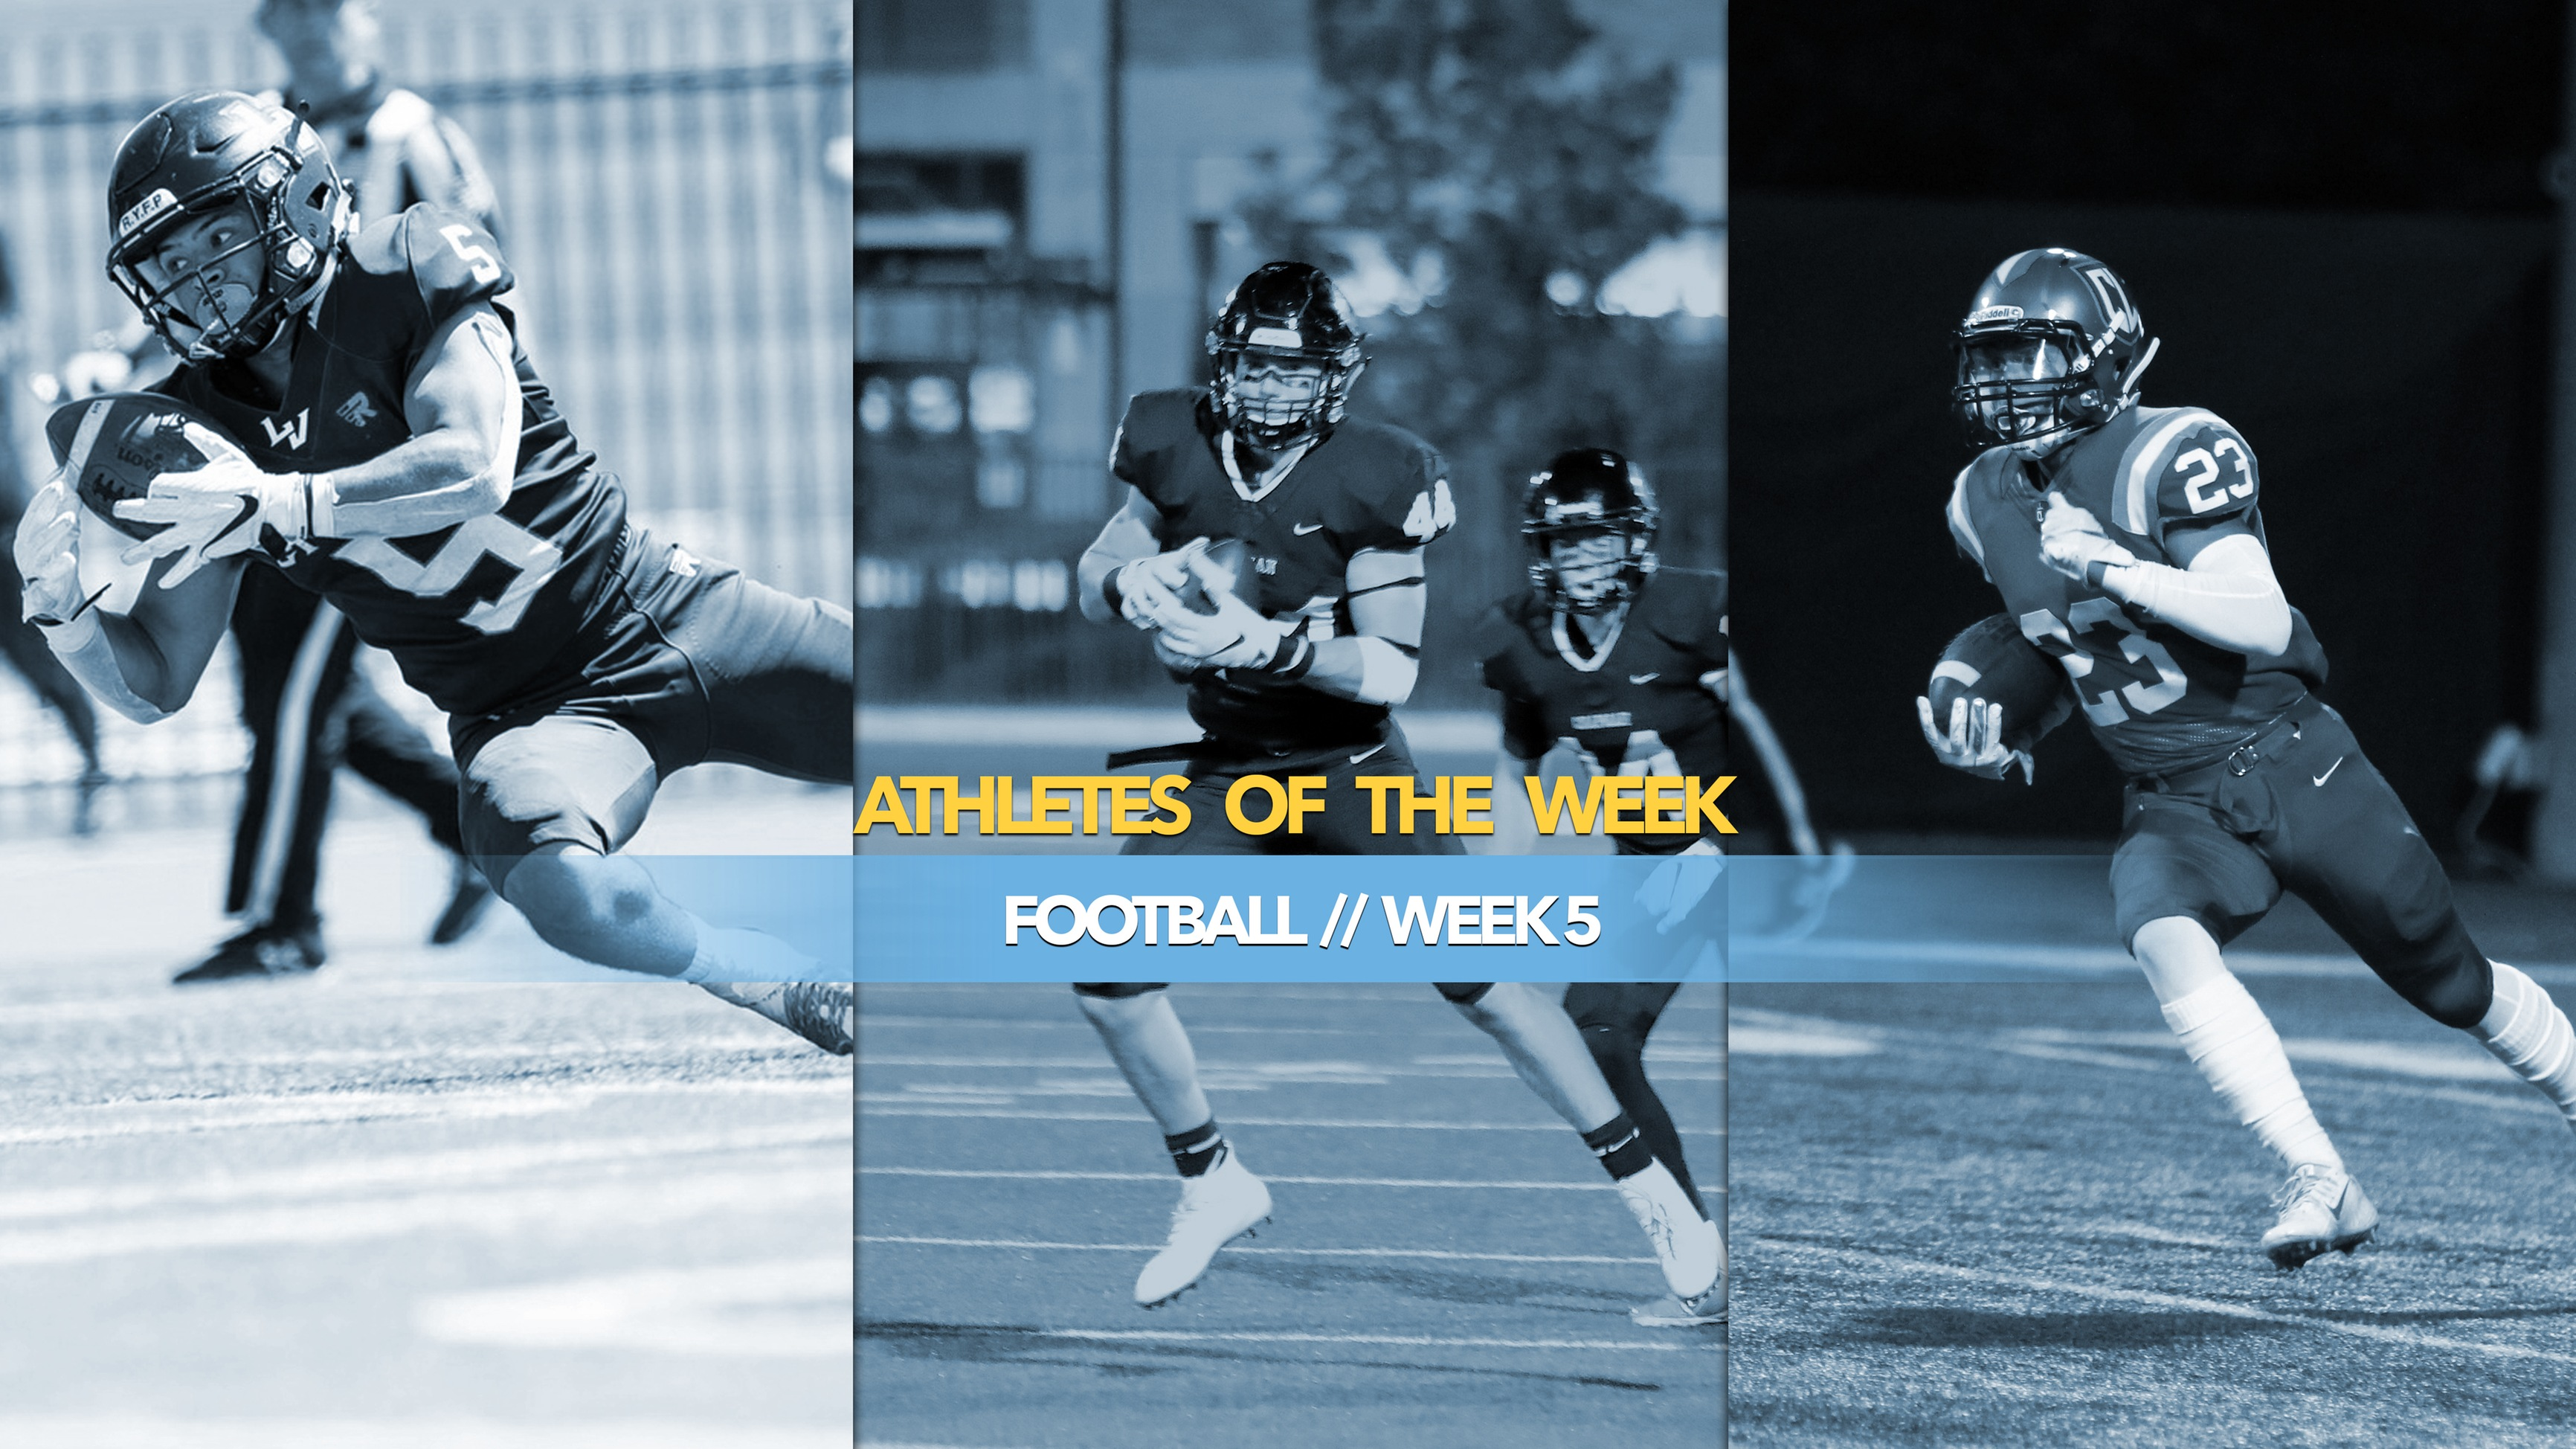 Football Athletes of the Week: October 7, 2019